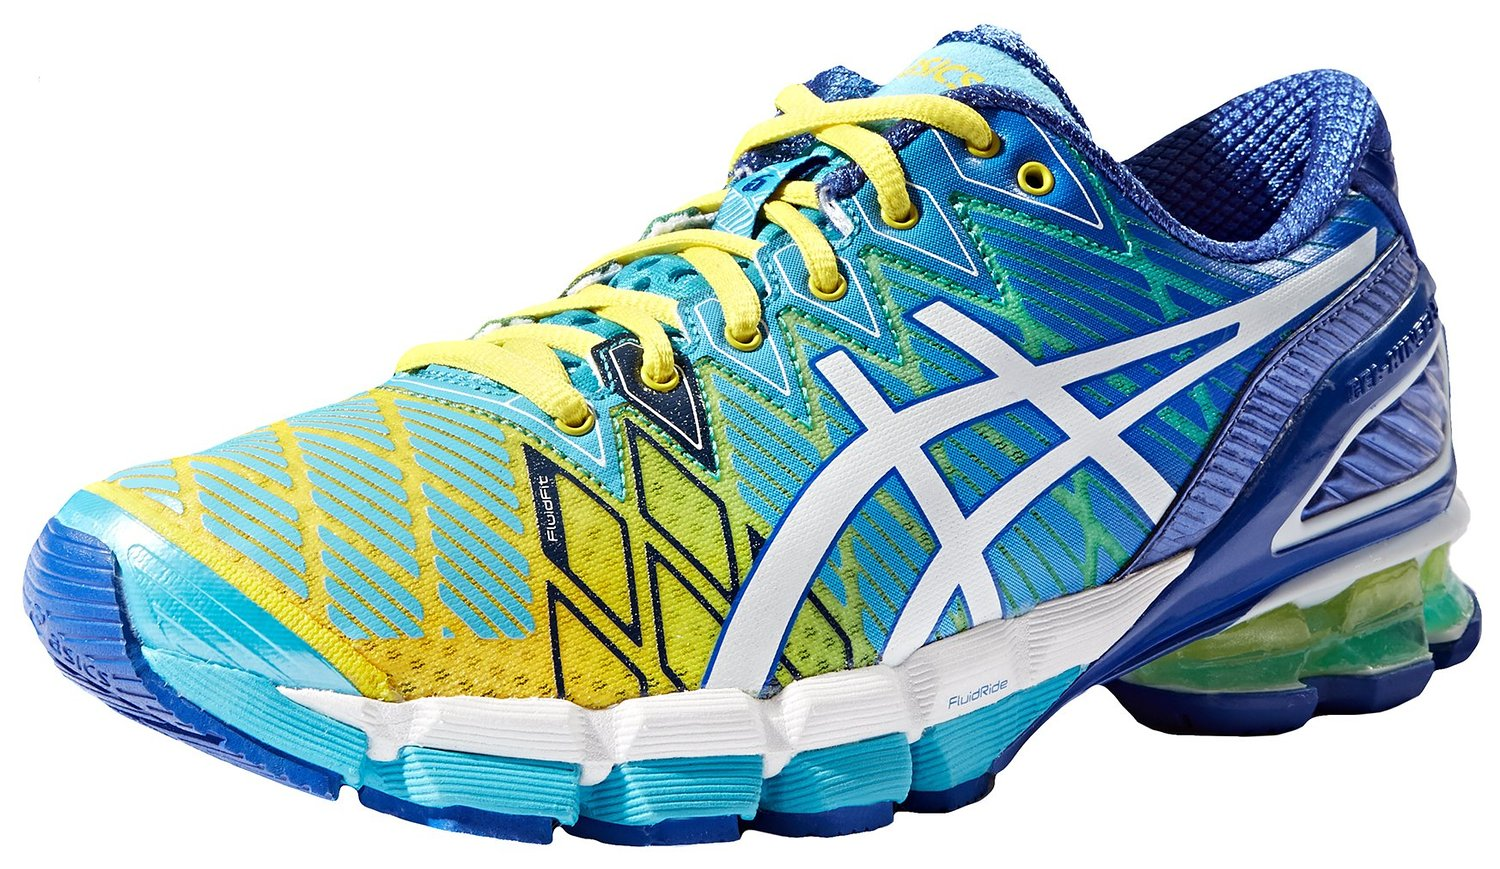 finest selection a5c29 4c762 ASICS GEL-Kinsei 5 Running Shoe Yellow-White-Turquoise